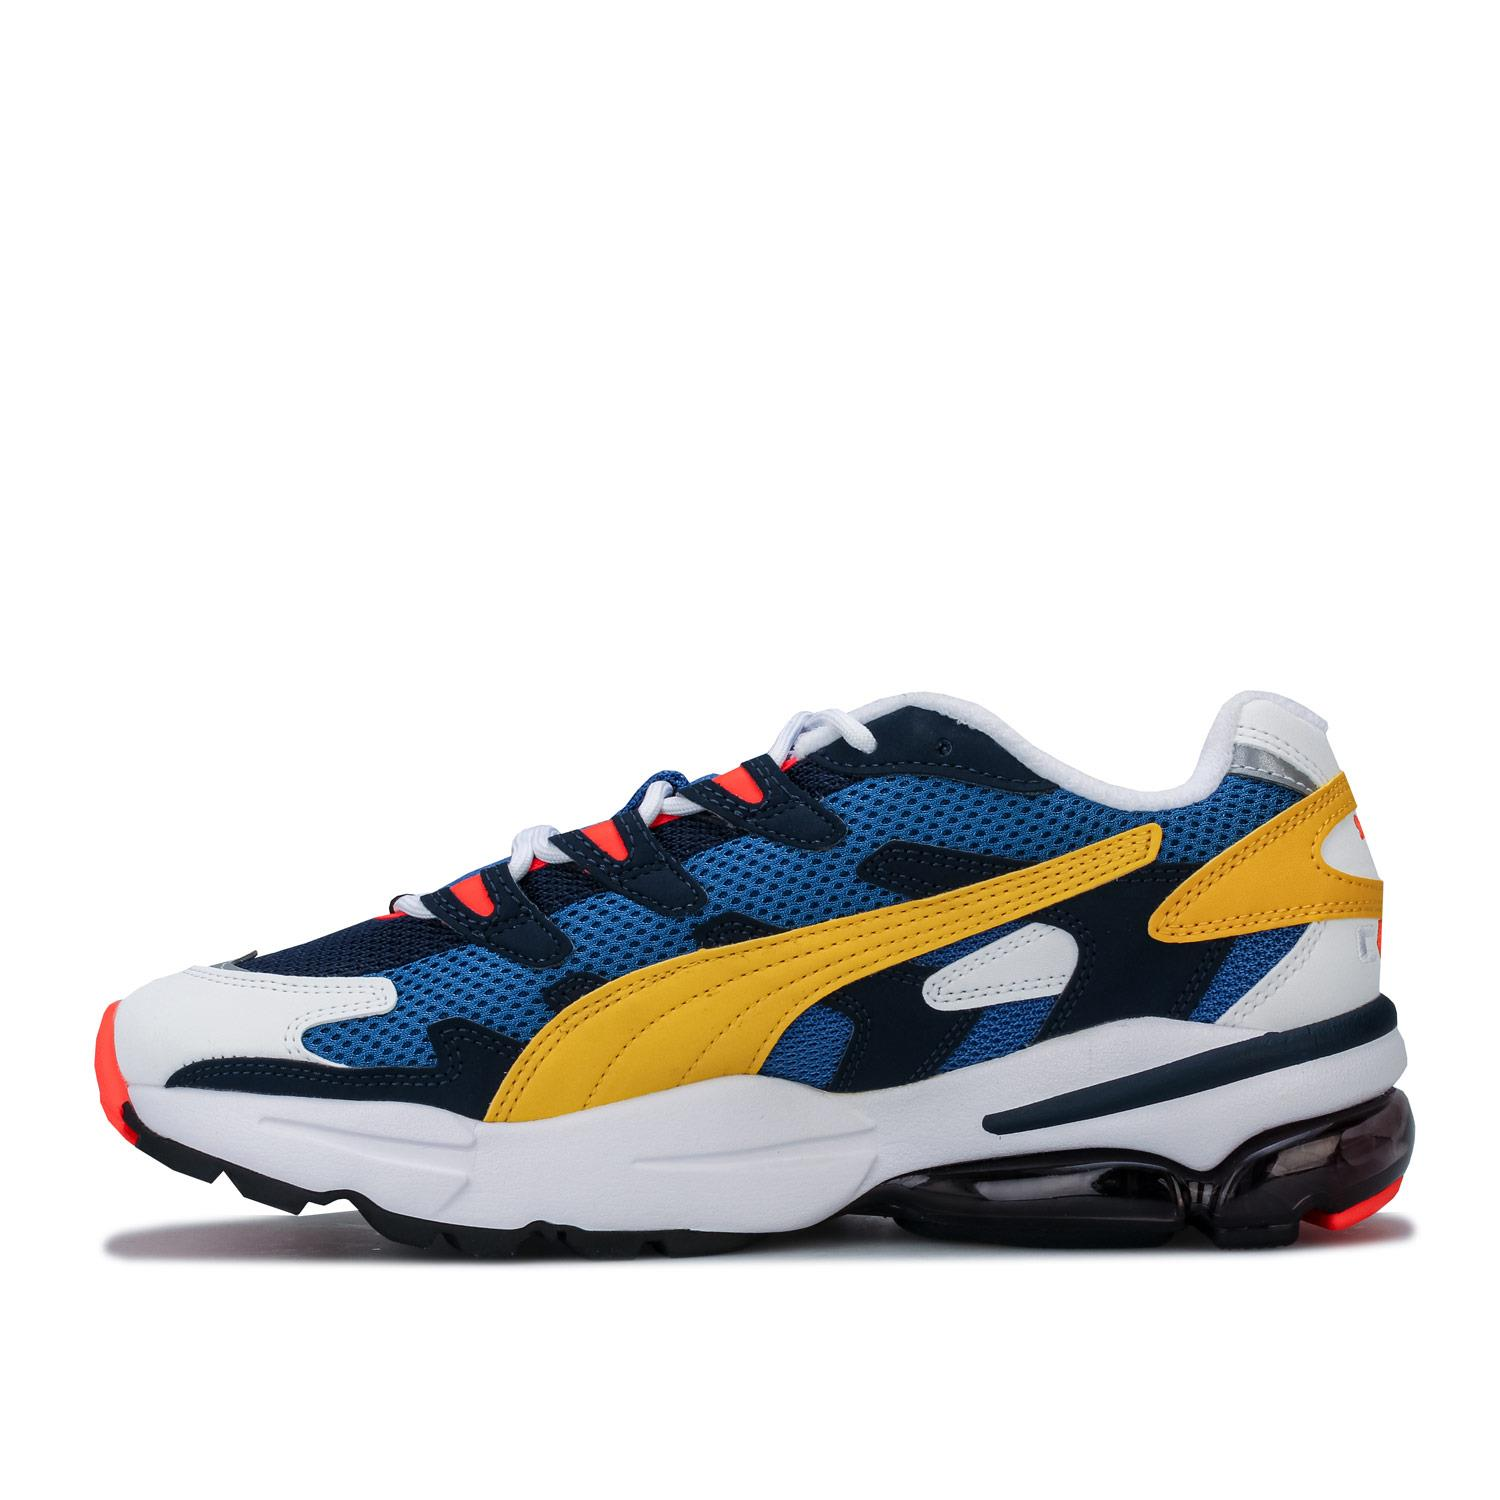 Mens-Puma-Cell-Alien-OG-Trainers-in-Blue-Green-Black-Red-Blue-and-Yellow thumbnail 13